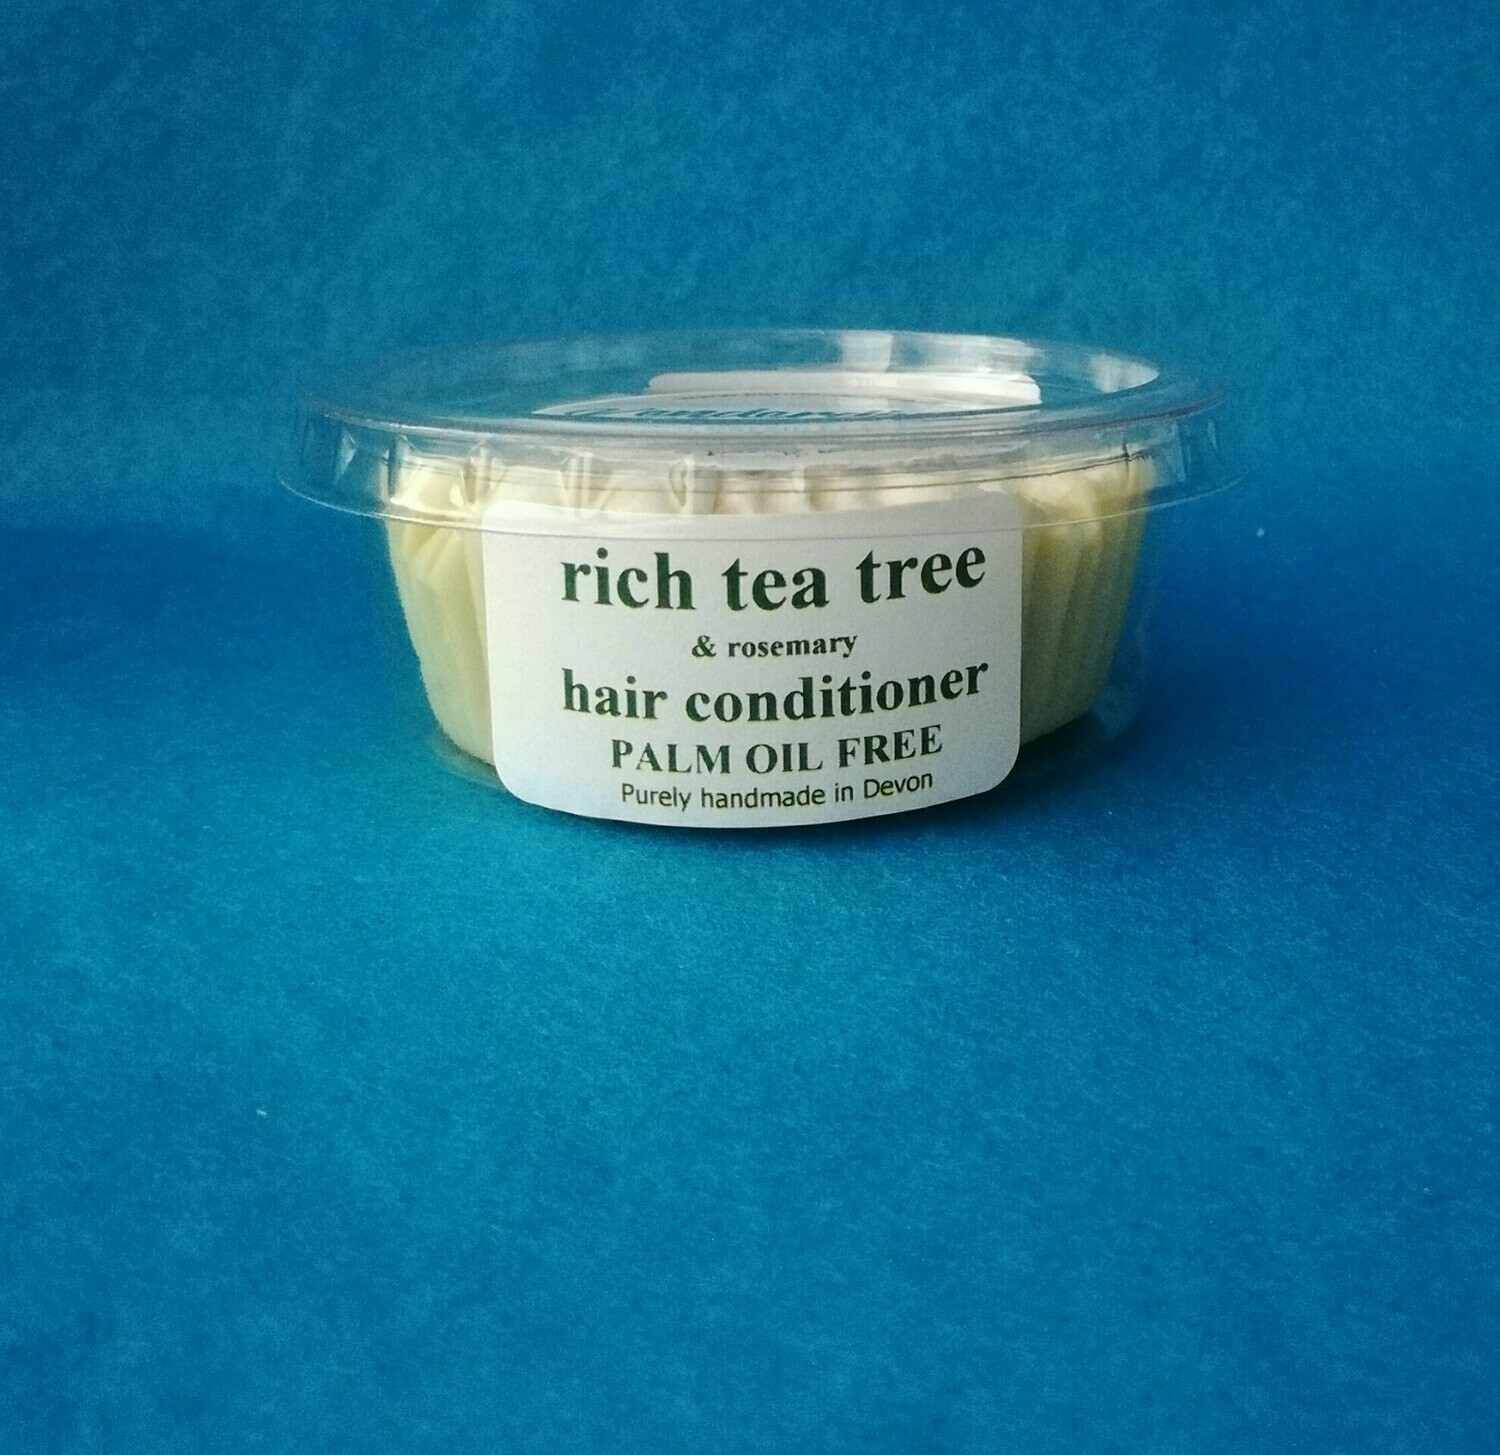 Rich hair conditioner - tea tree